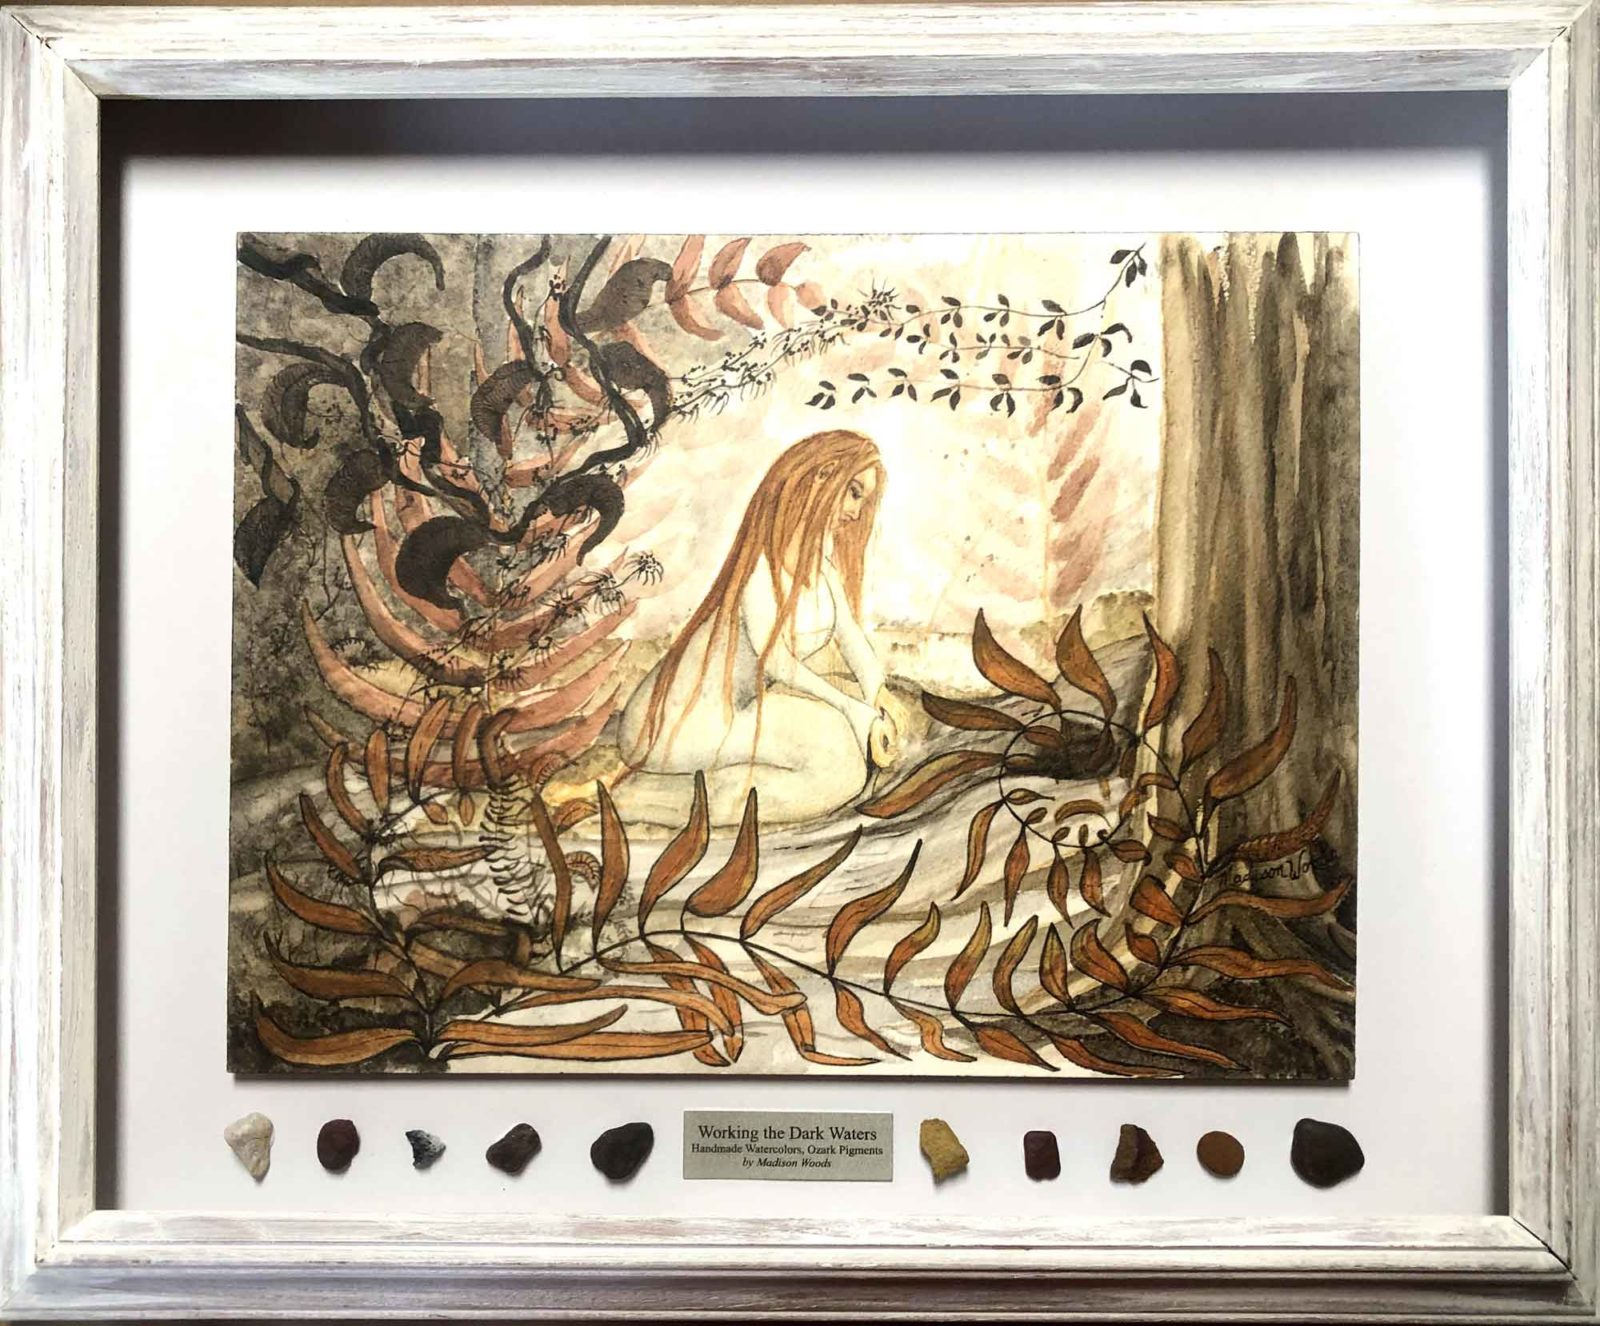 Fantasy, but definitely influenced and inspired by nature. Working the Dark Waters, a framed original by Madison Woods